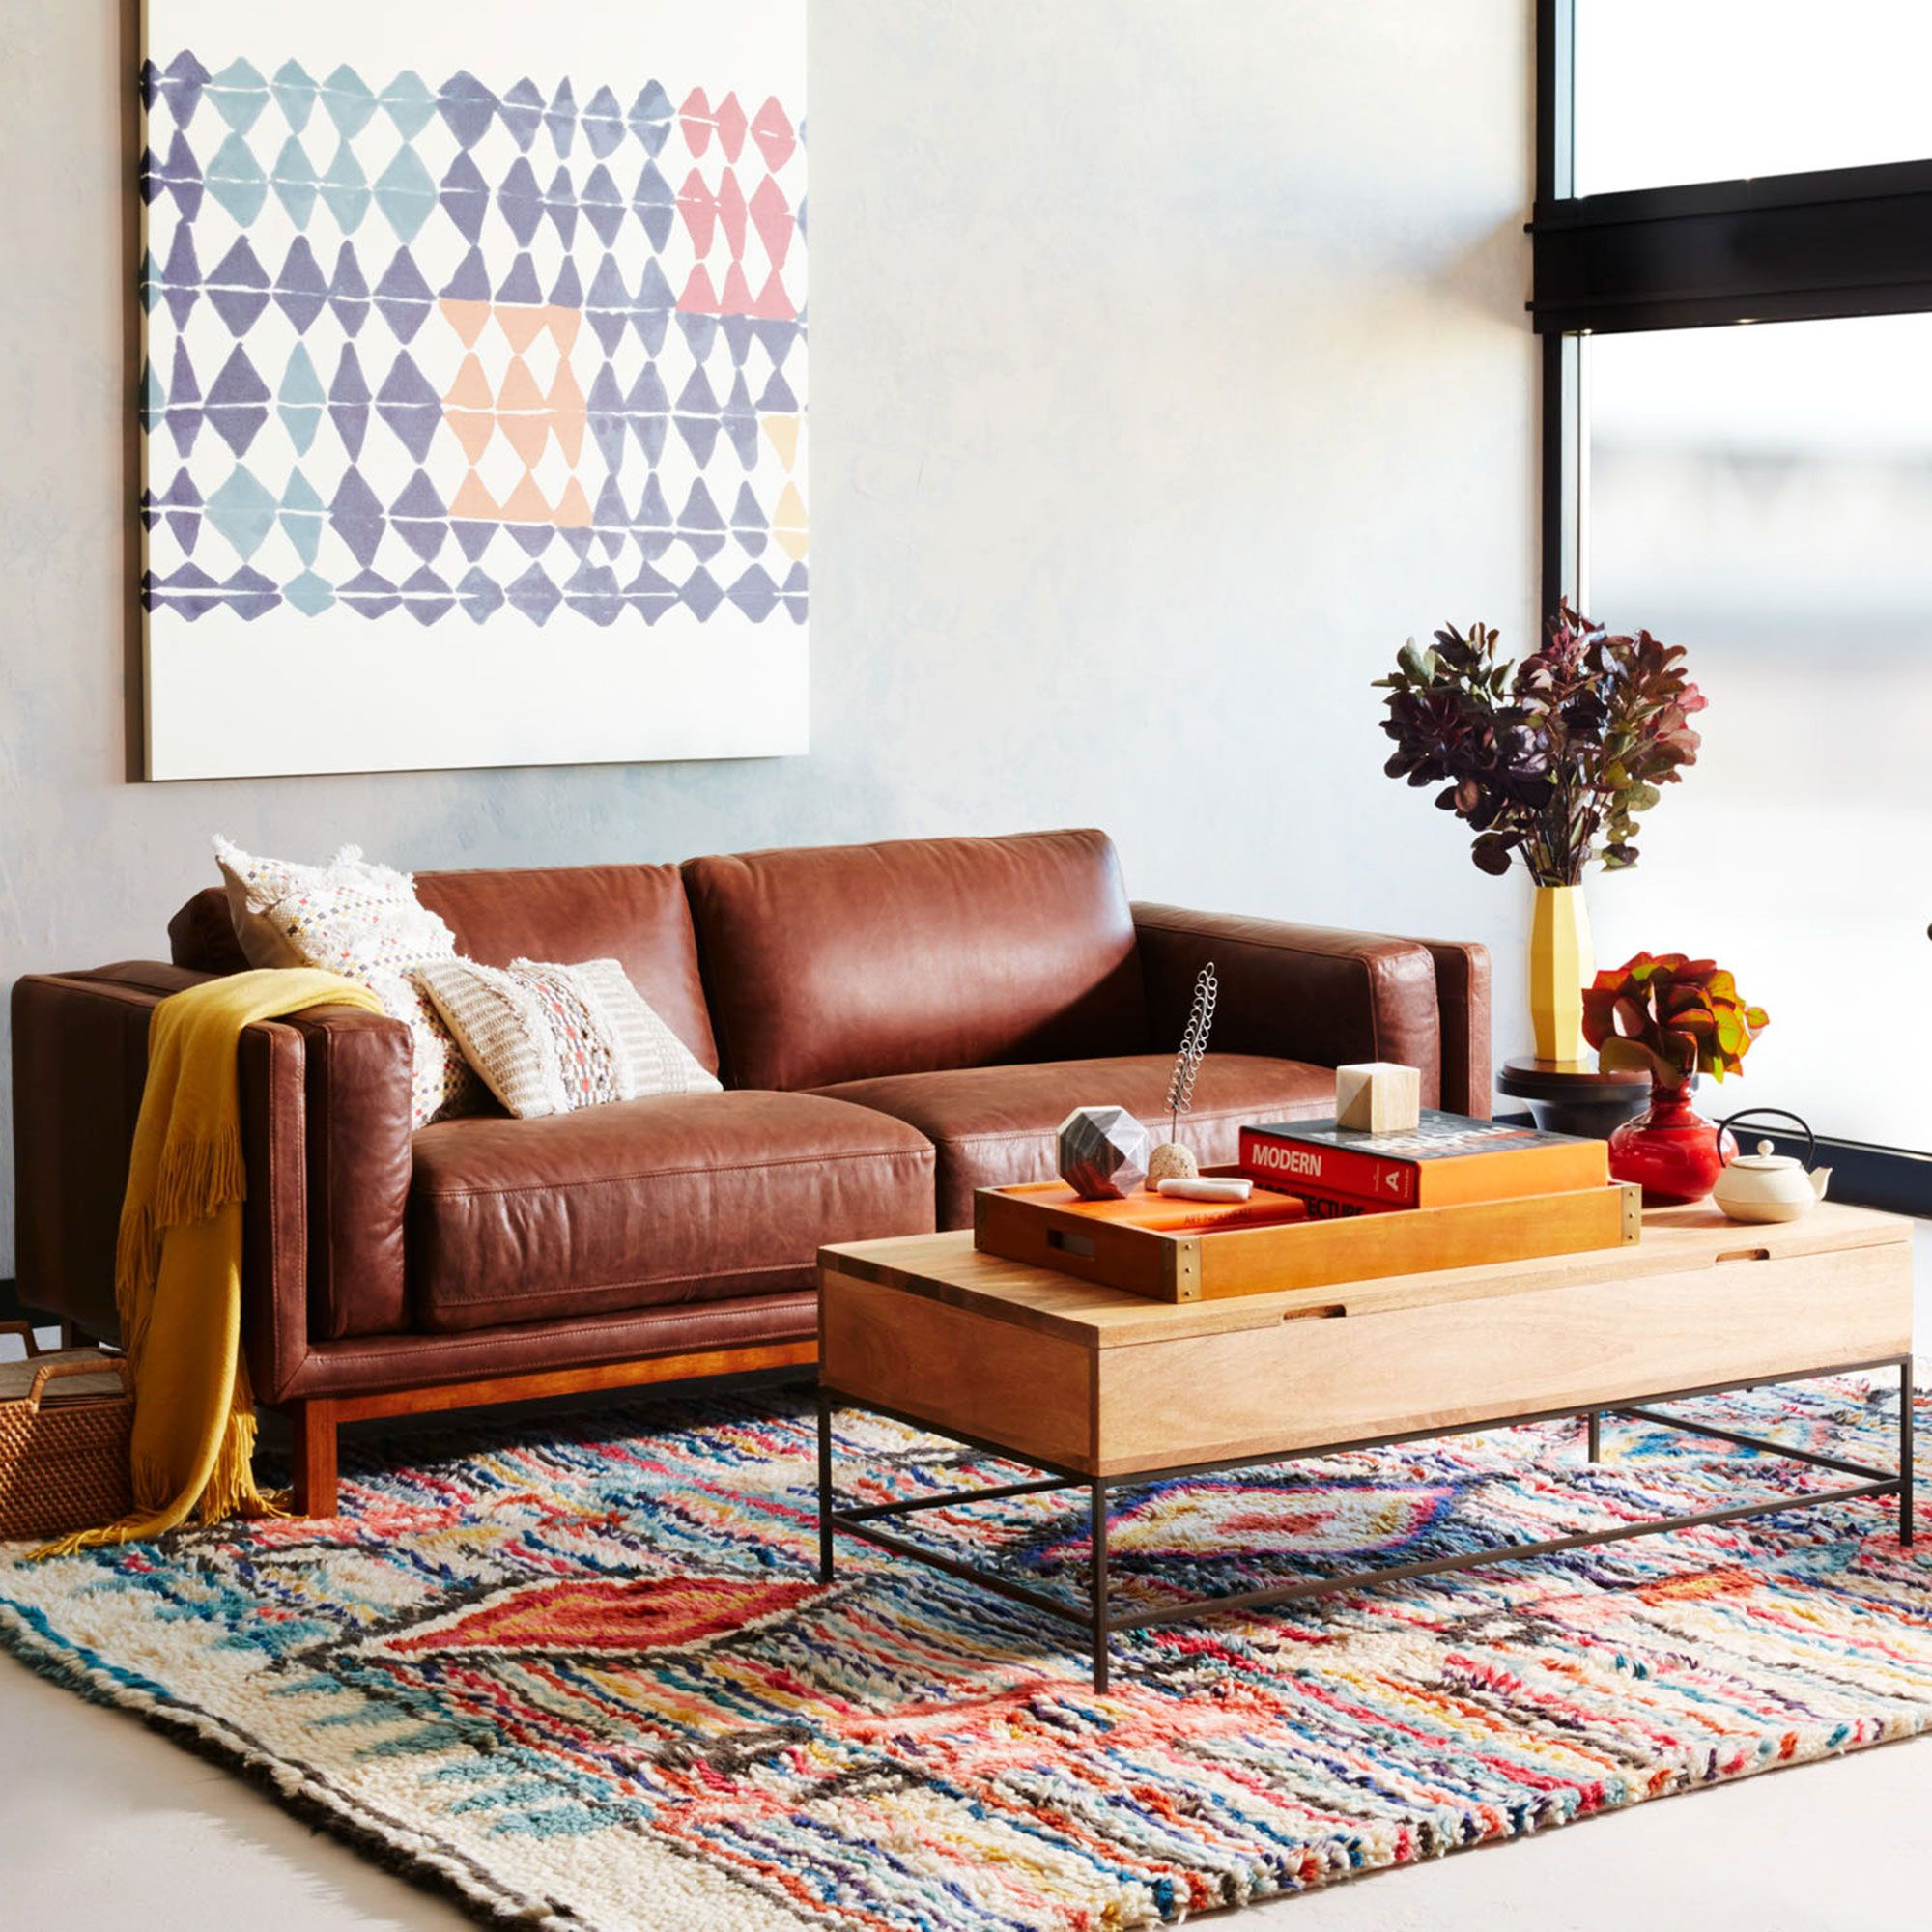 Introducing west elm